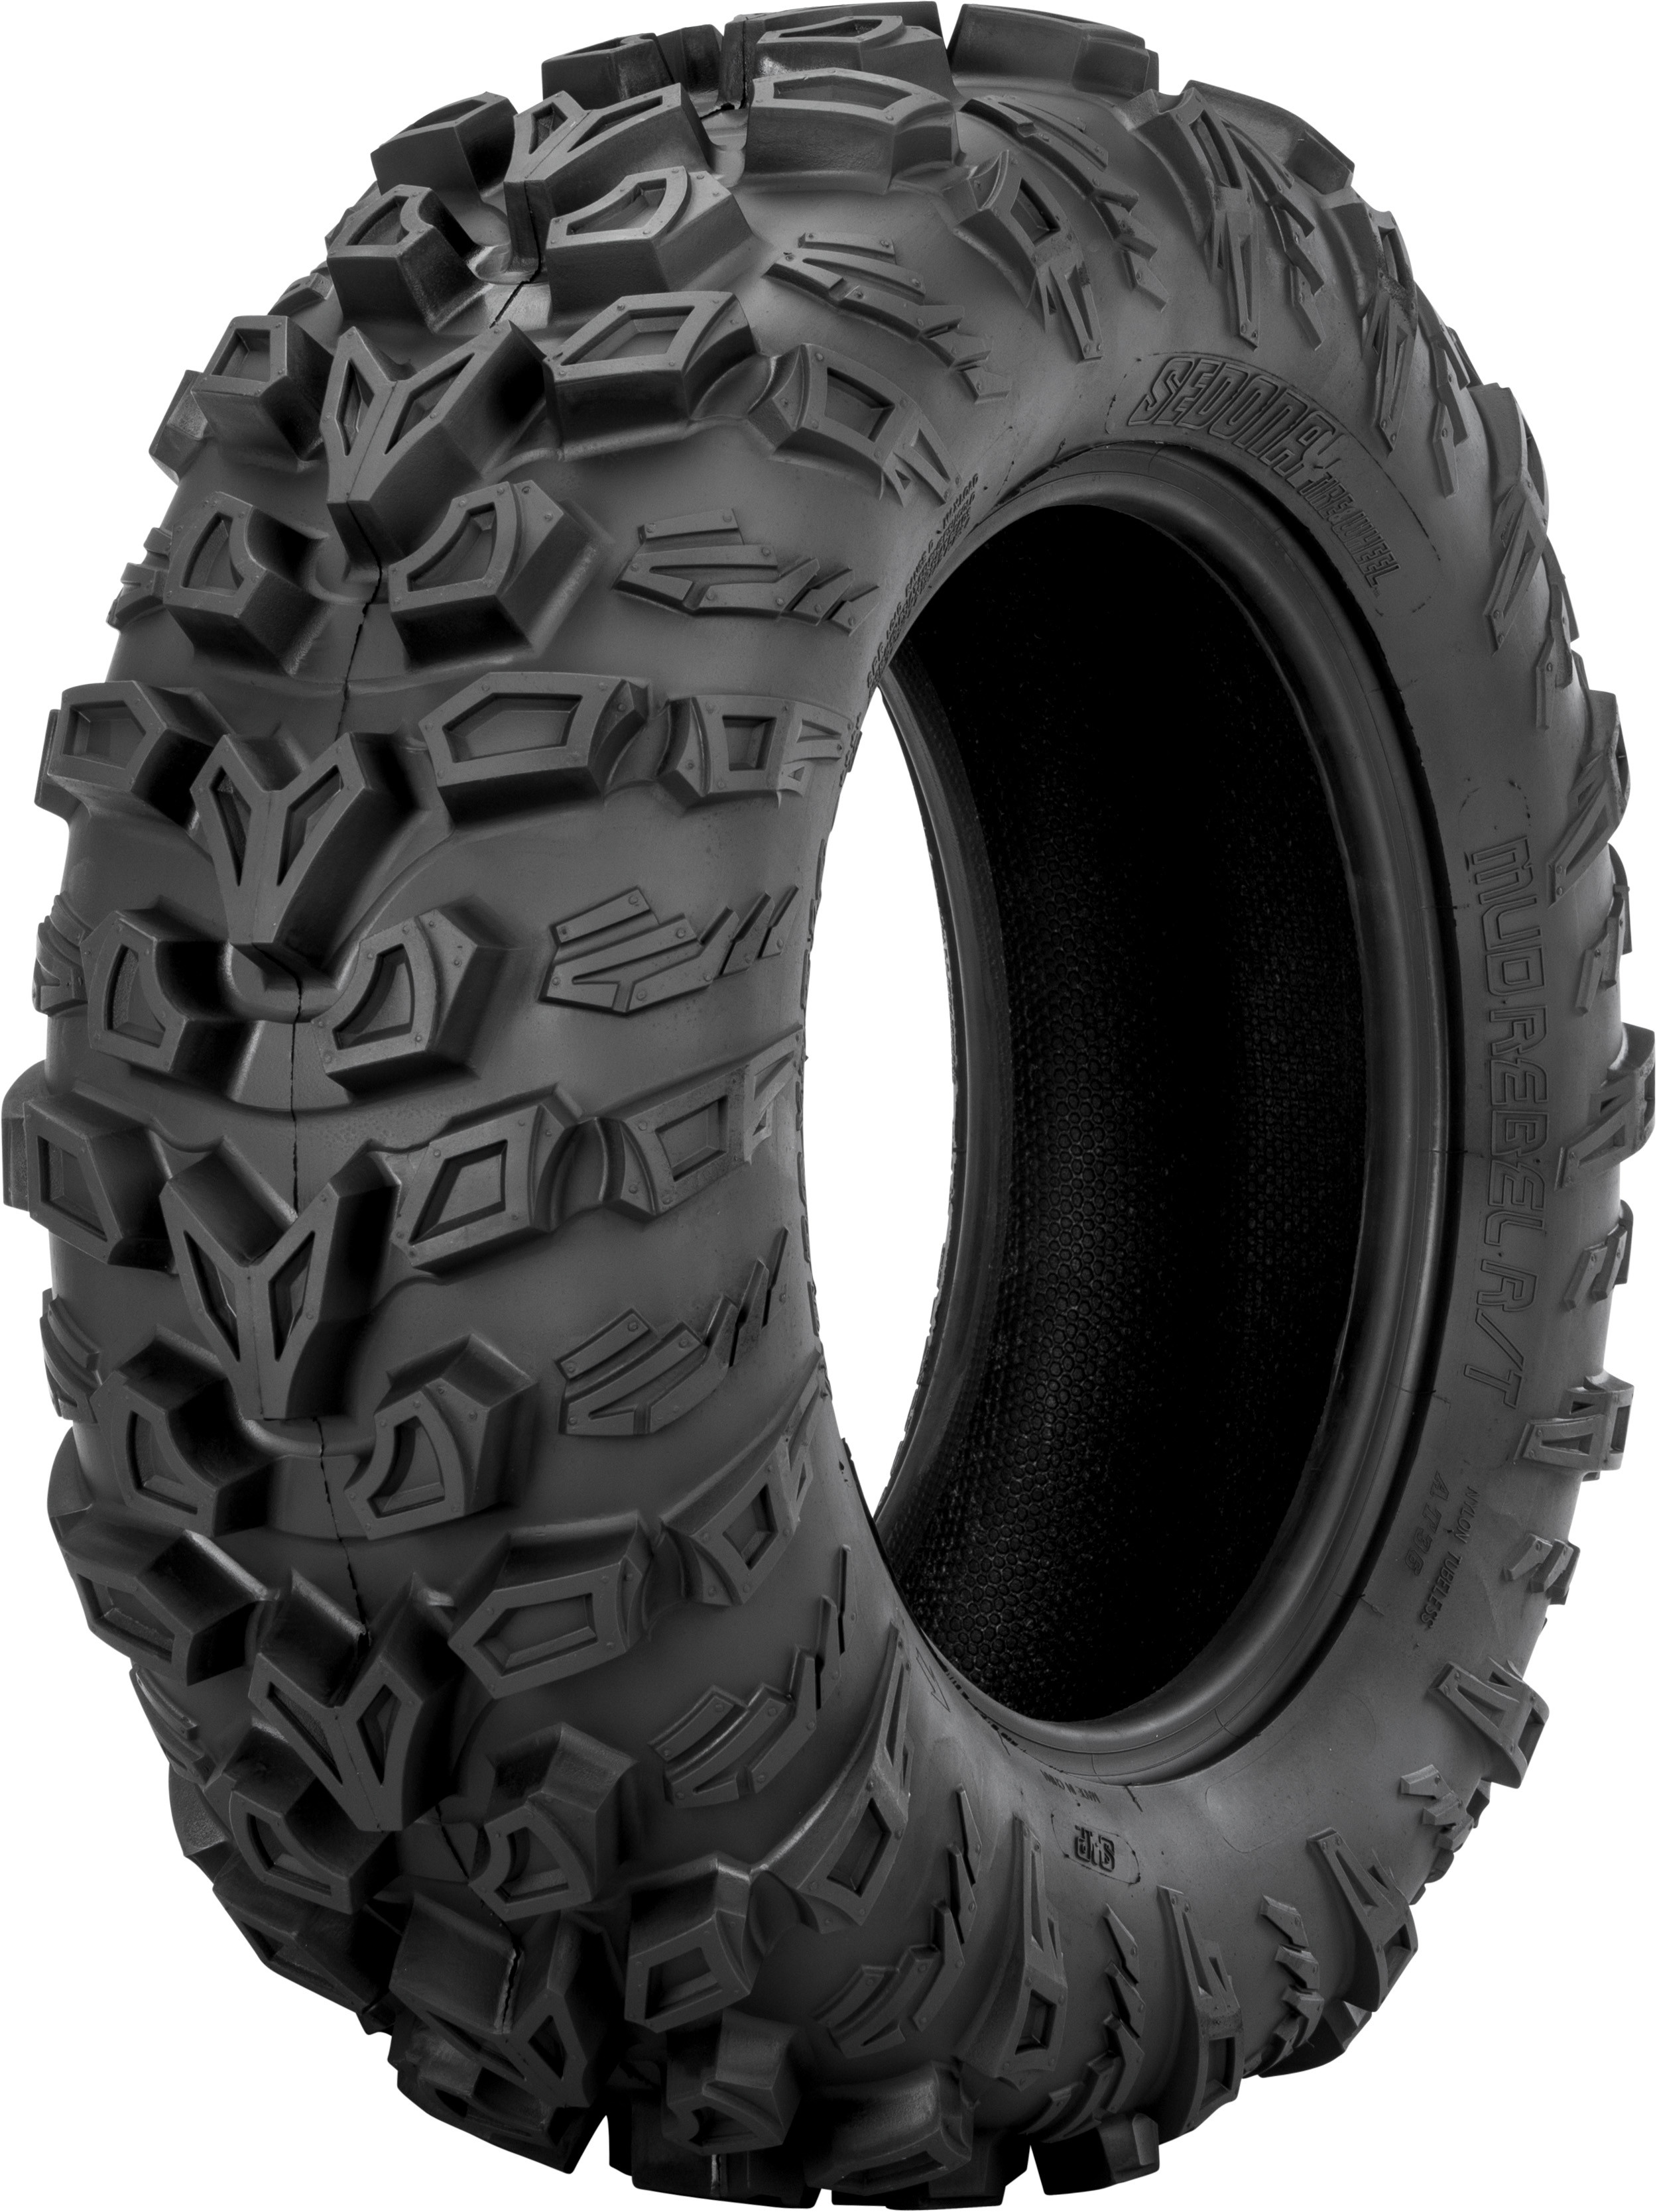 Sedona MR269R128PLY Tire Mud Rebel R/T Front 26X9R12 Lr-455Lbs Radial